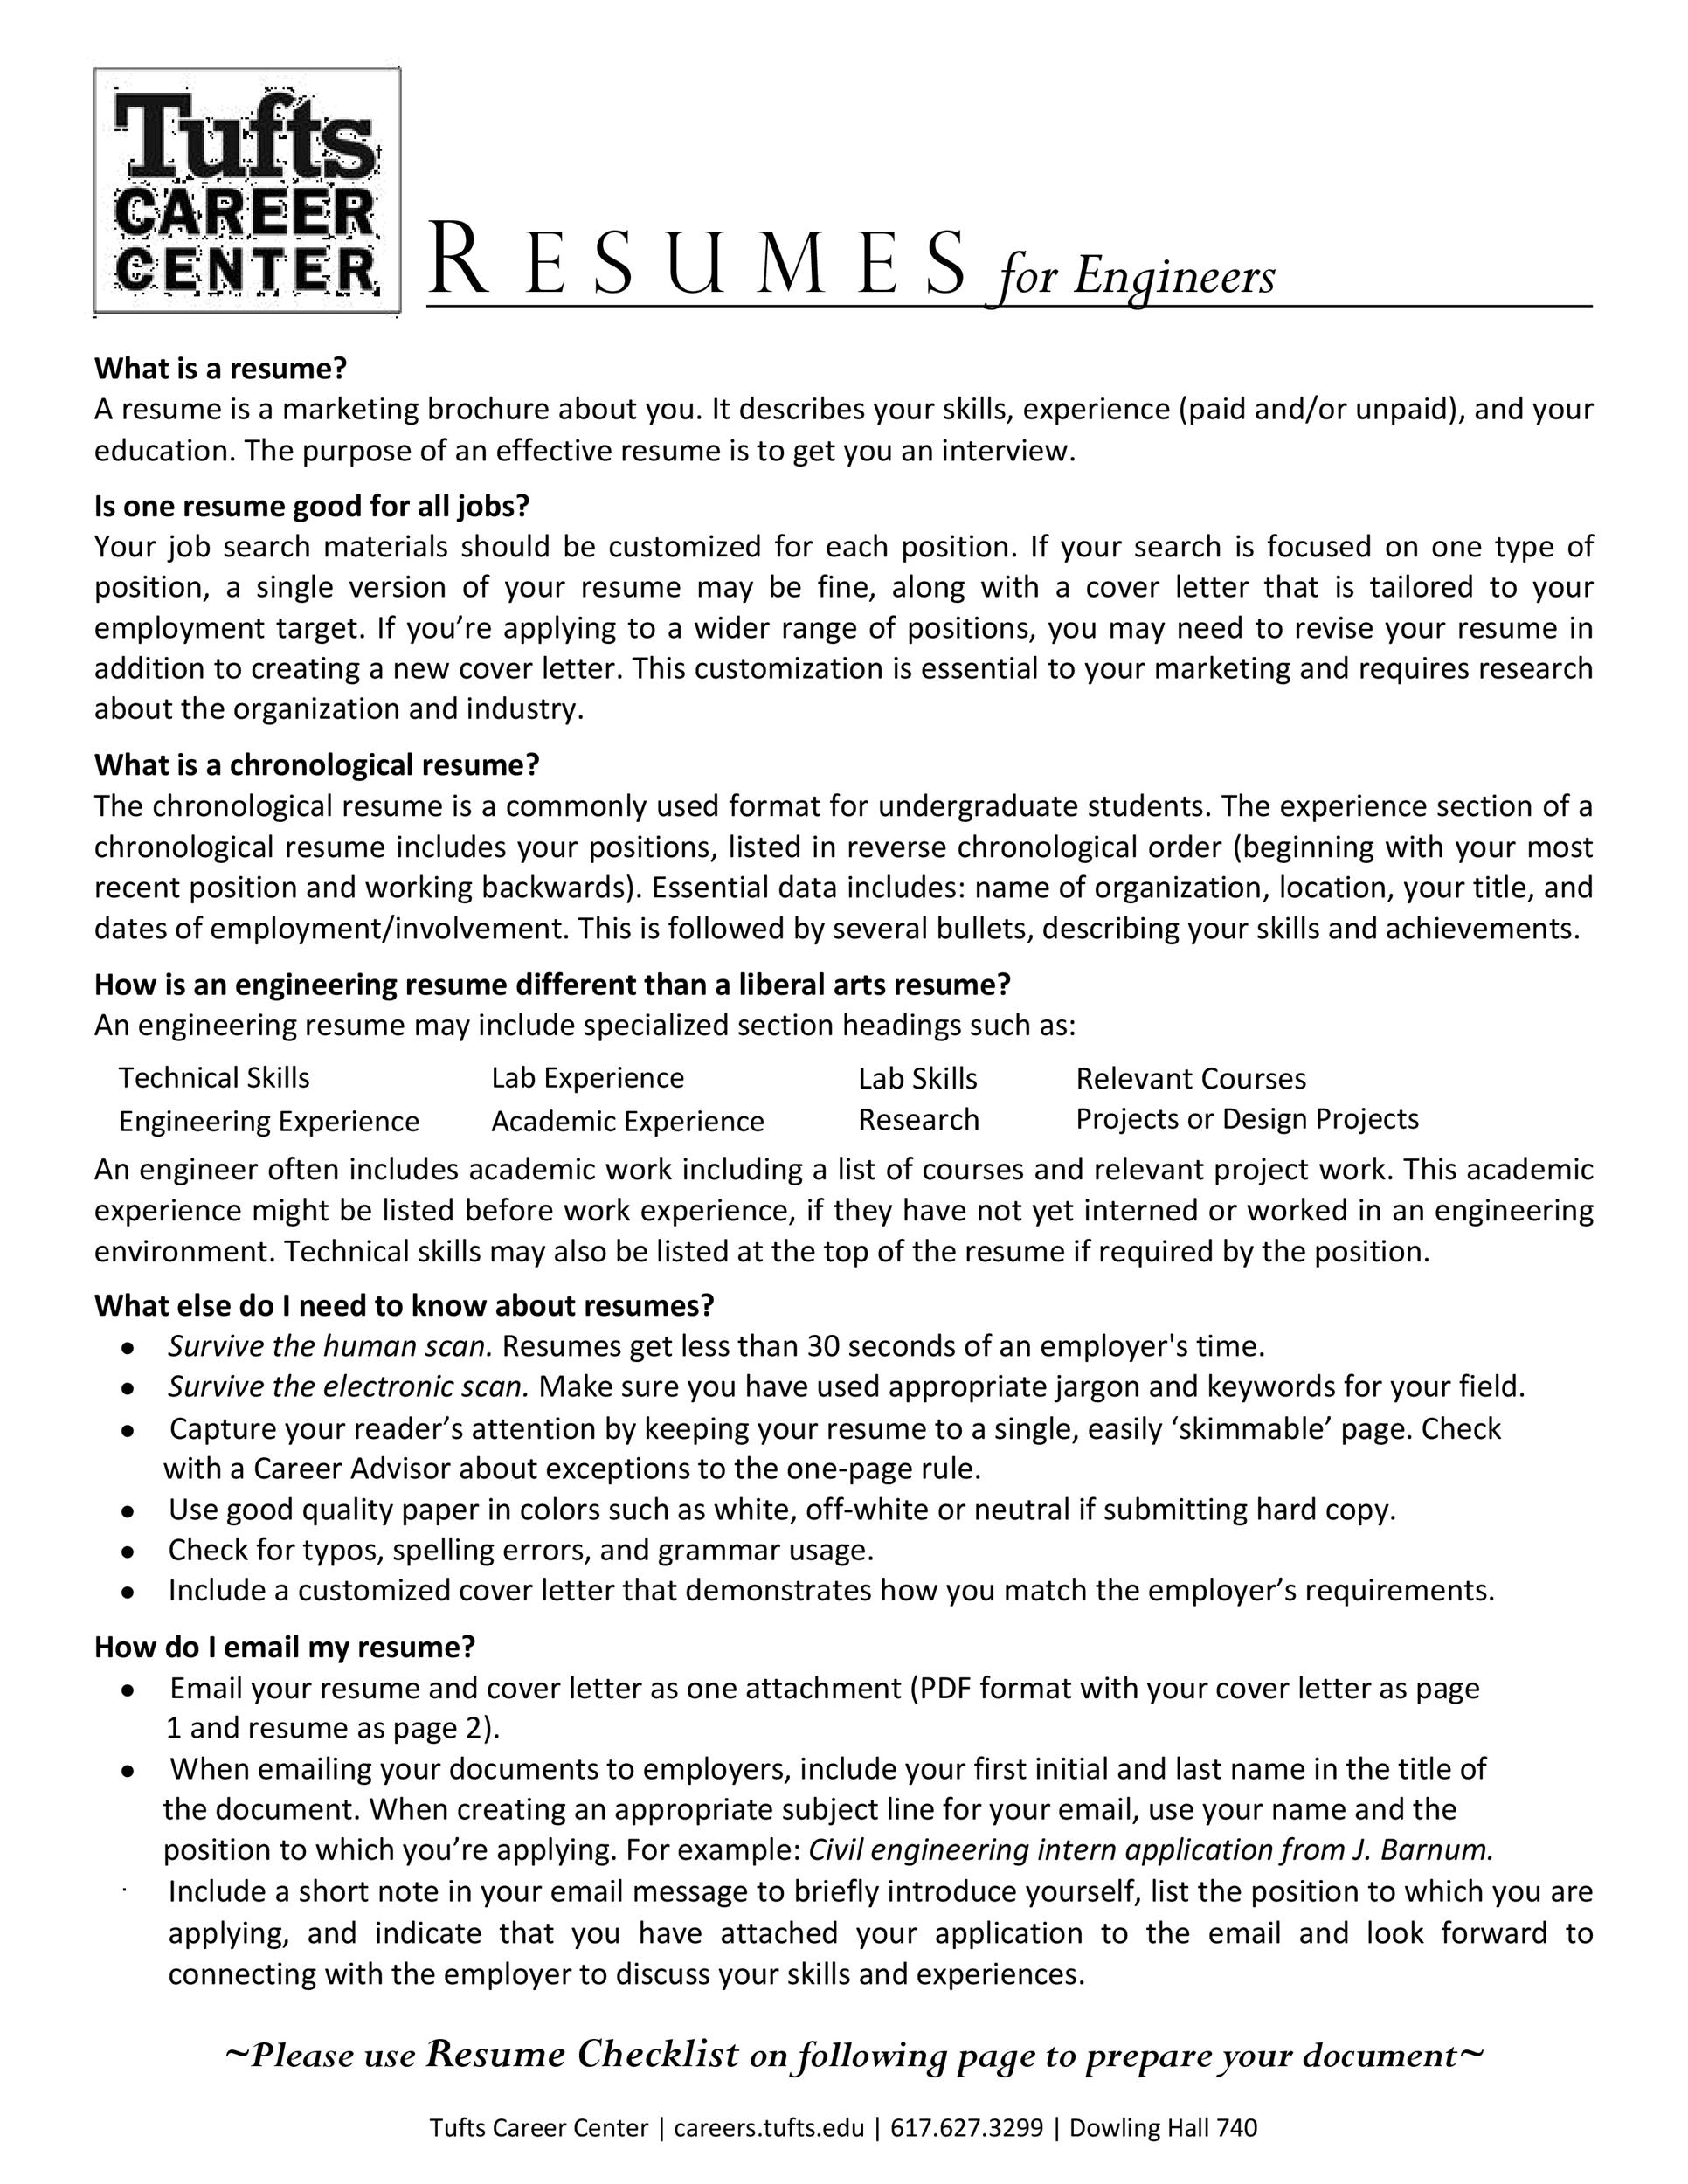 Free college resume template 24